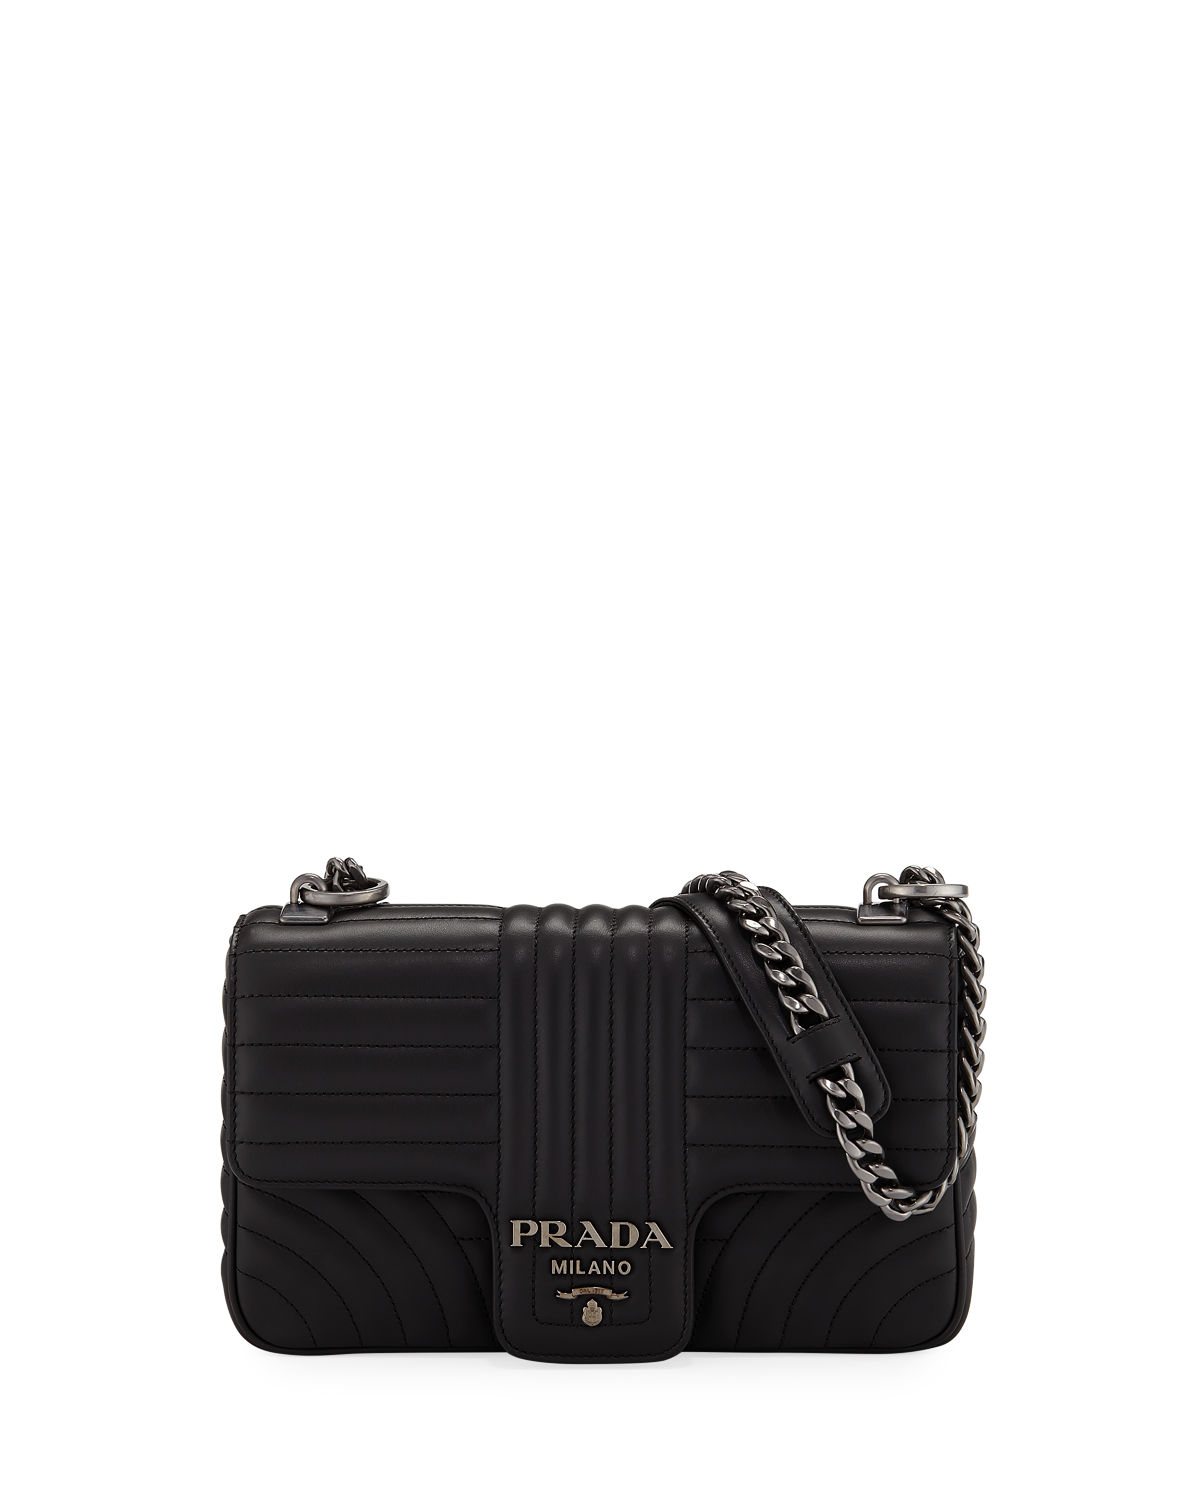 d40aa883fd7a Prada Diagramme Medium Shoulder Bag